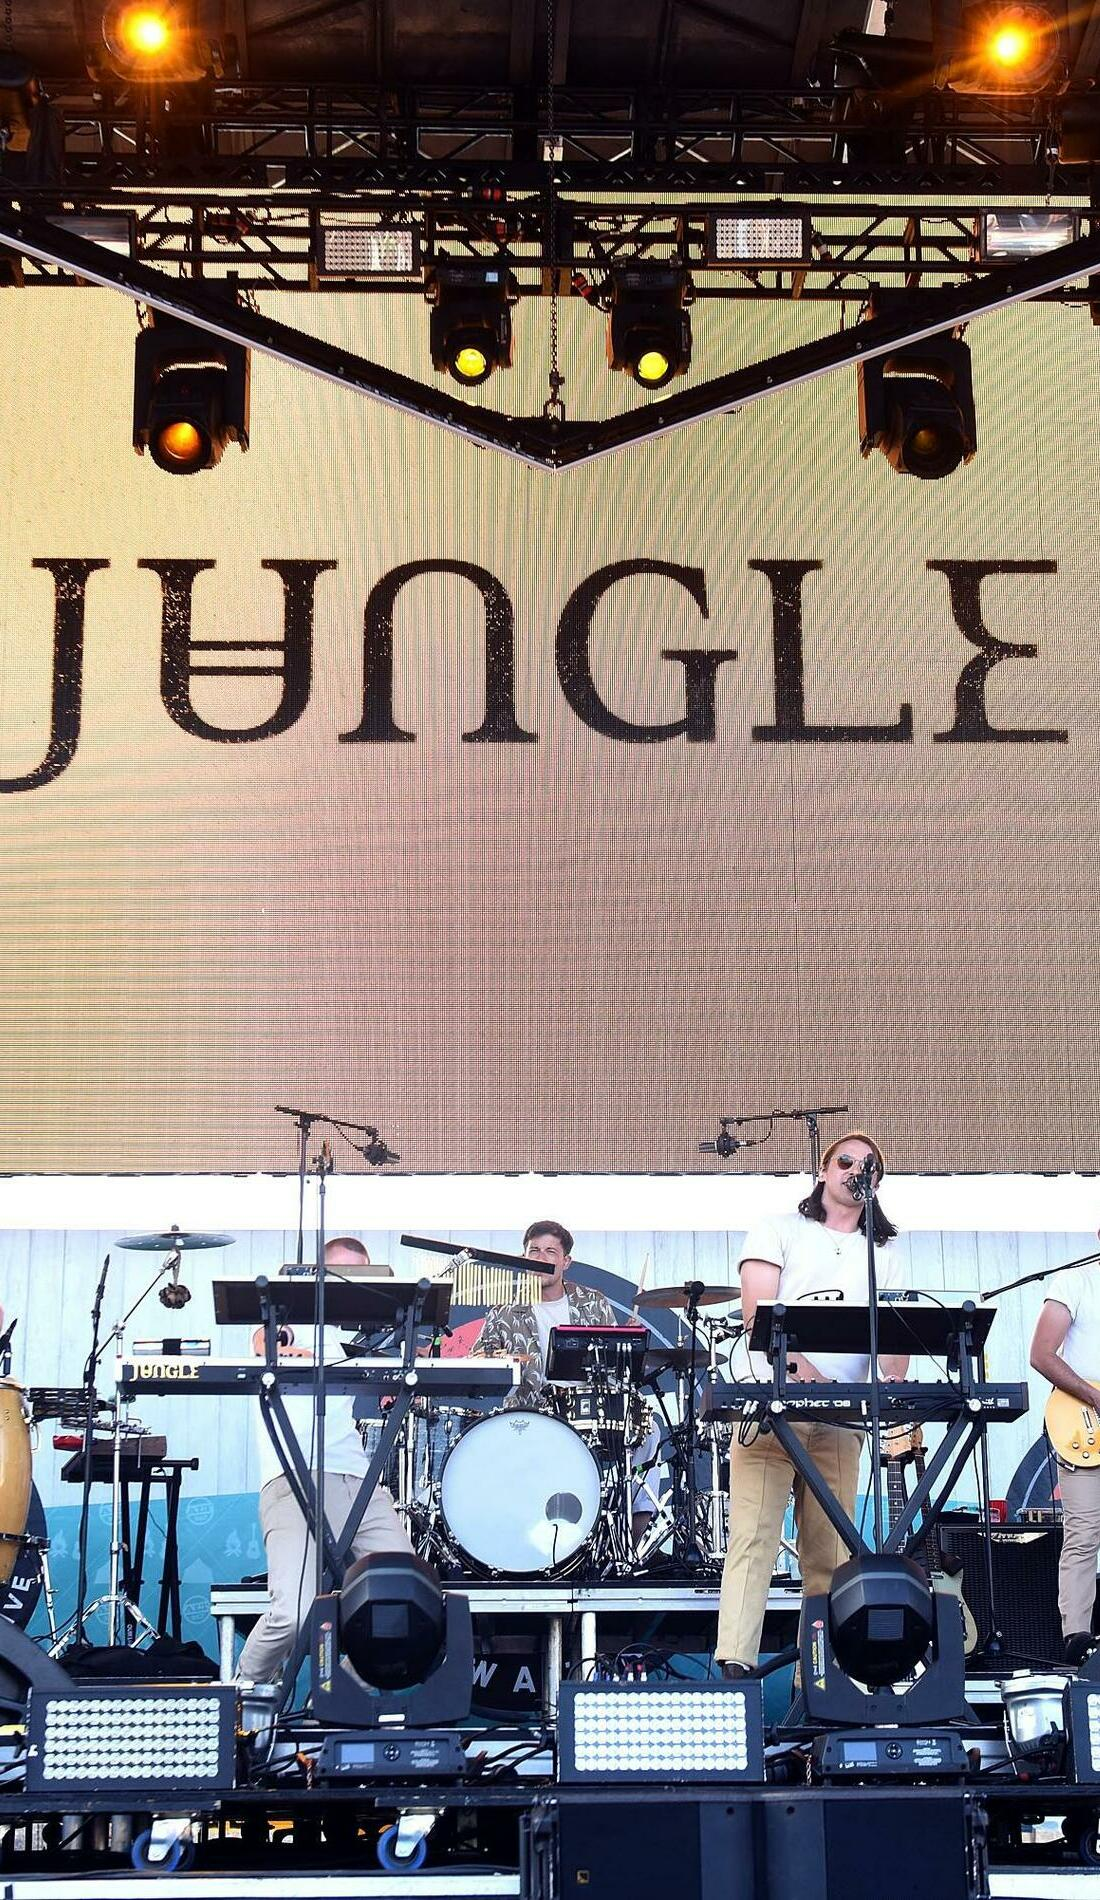 A Jungle live event